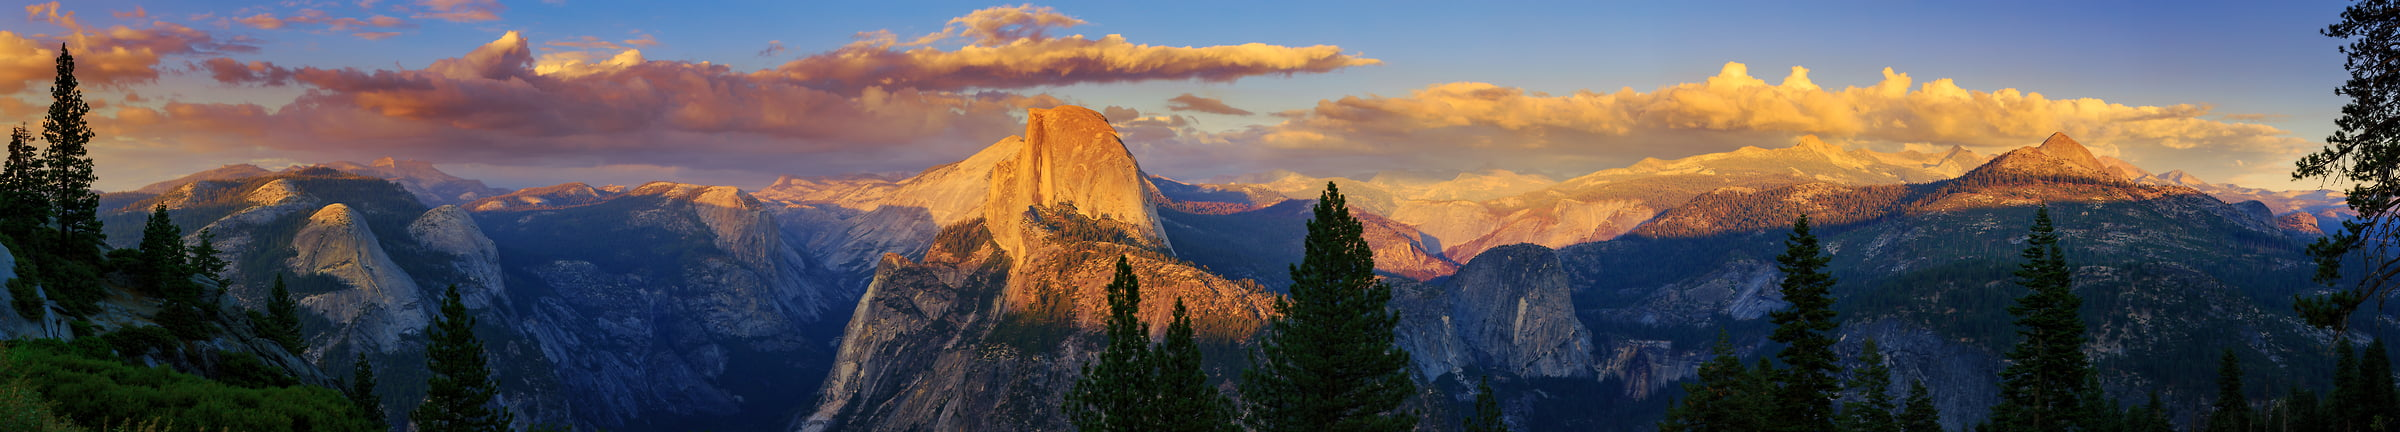 183 megapixels! A very high resolution, large-format VAST photo print of the Yosemite Naitonal Park valley and Half Dome at sunset from Glacier Point; nature landscape photo created by Guido Brandt